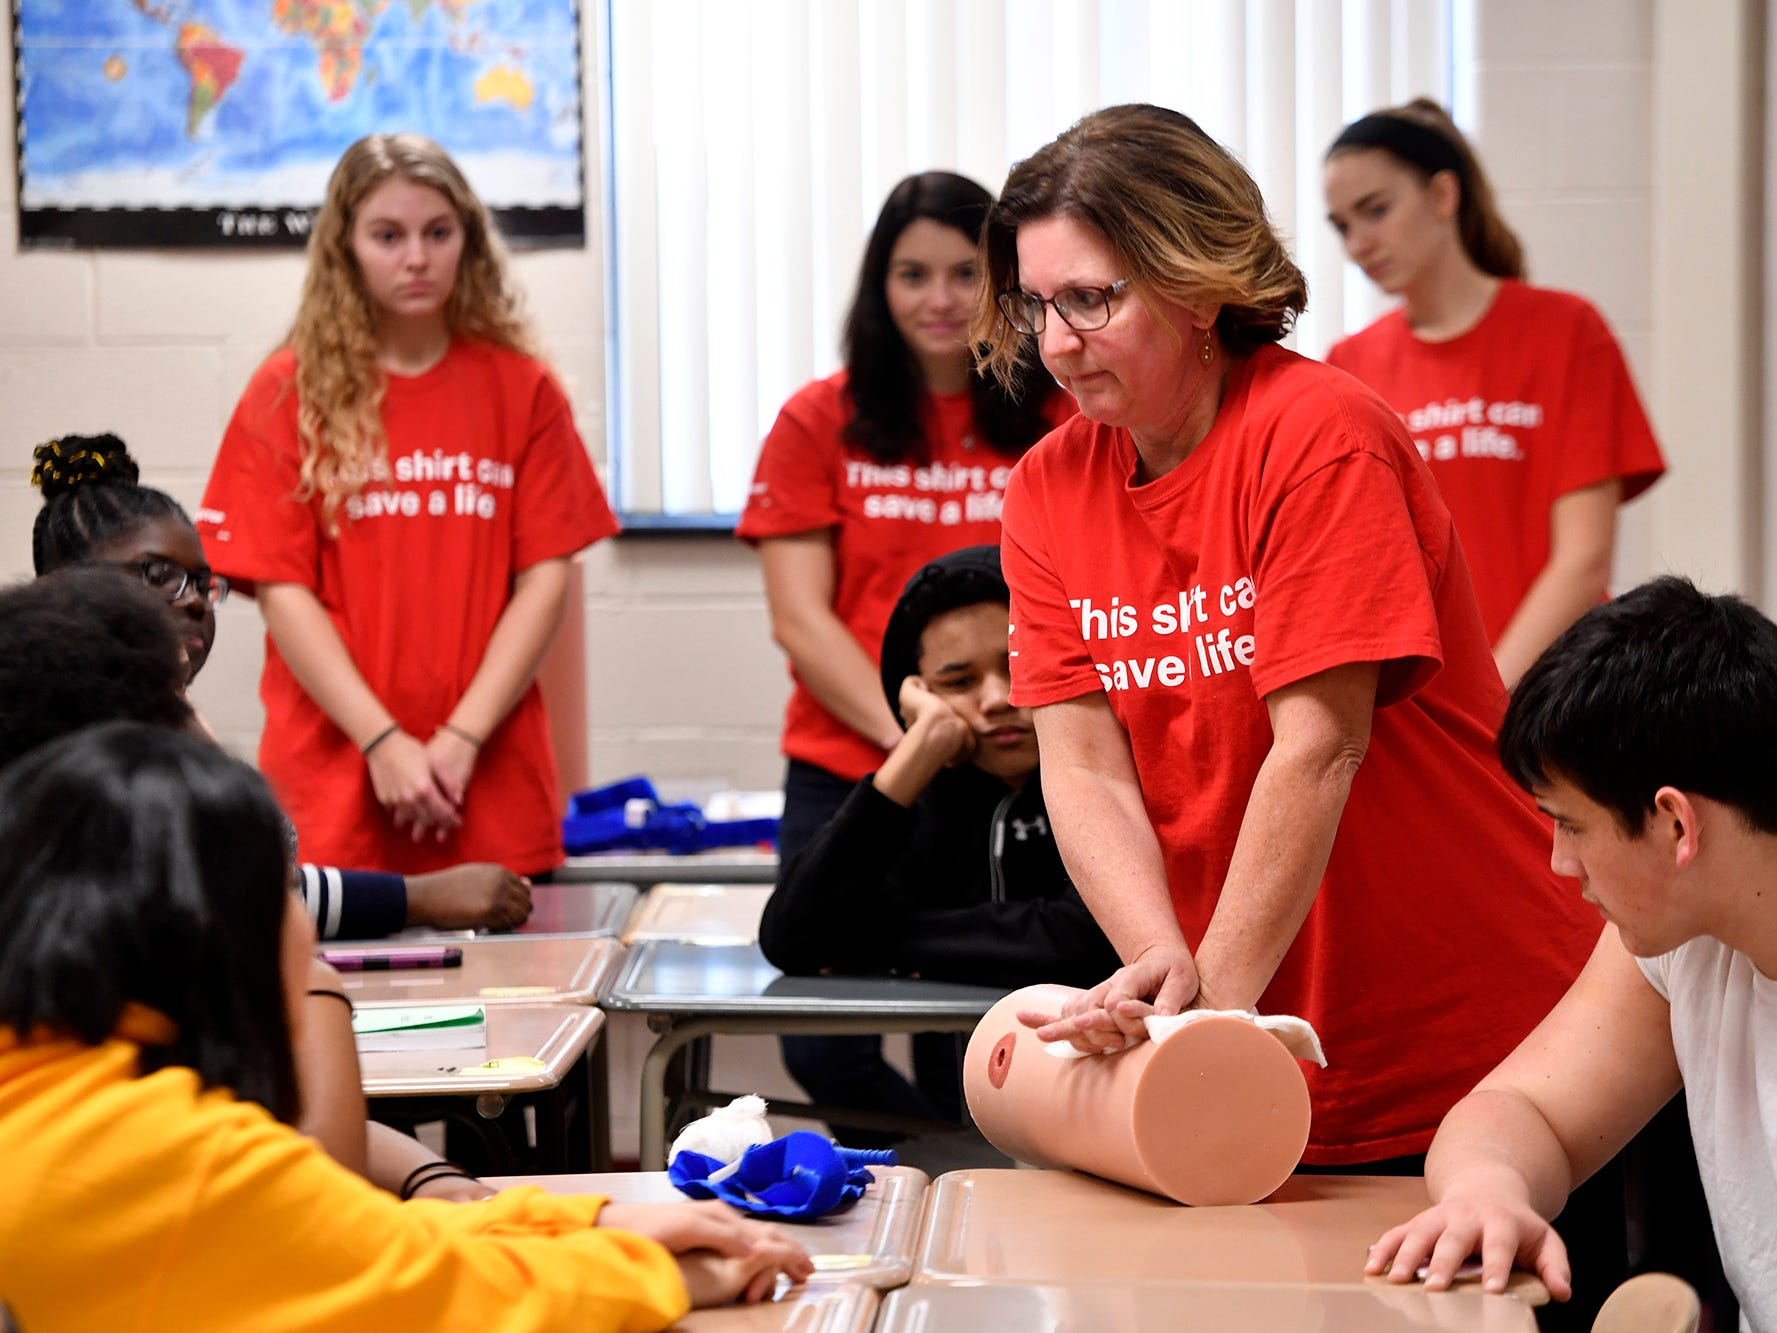 Kelli Masters, assistant professor of nursing at York College, demonstrates the proper way to apply pressure to a bleeding wound for students in the William Penn Senior High School Public Safety and Emergency Services class, Tuesday, Nov. 27, 2018.  John A. Pavoncello photo